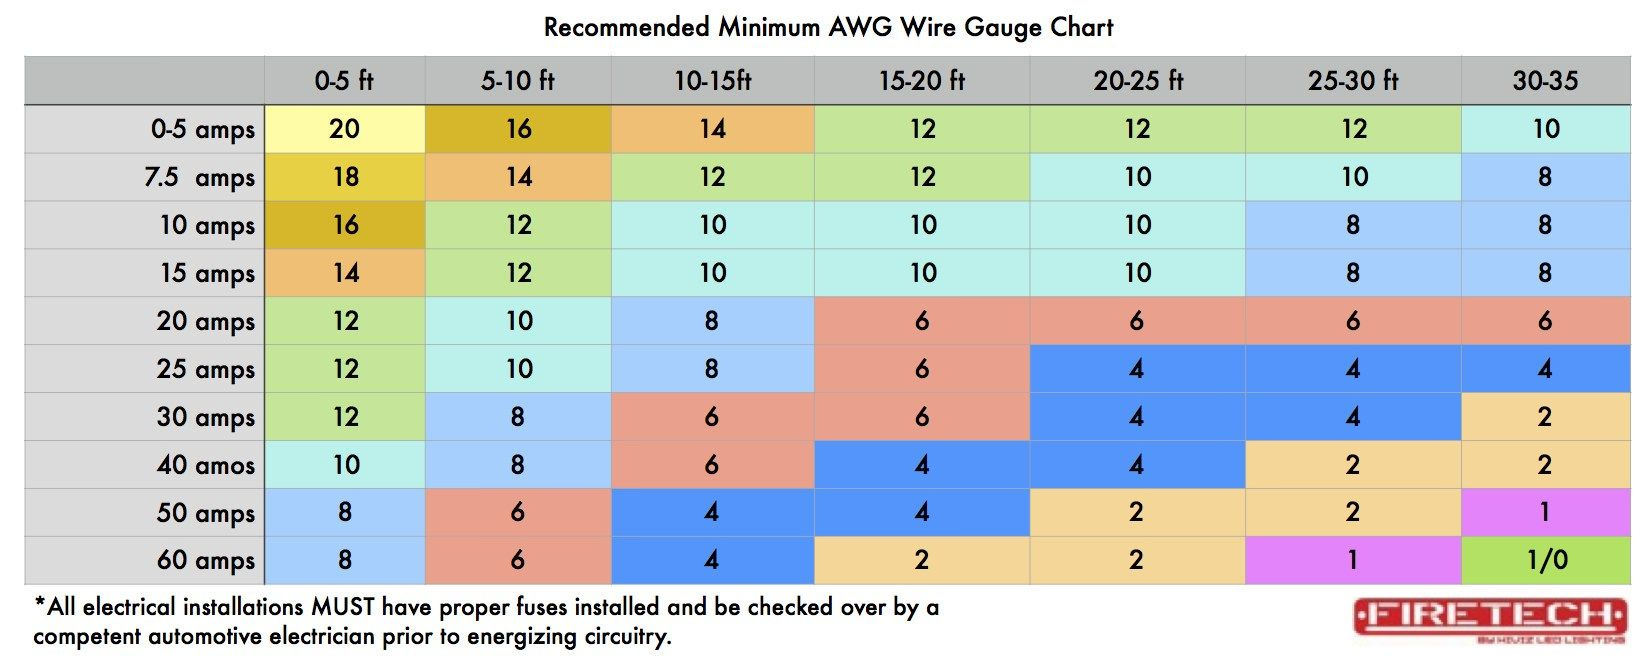 Attractive amp wire size chart illustration electrical system image result for wire size chart electrical pinterest chart greentooth